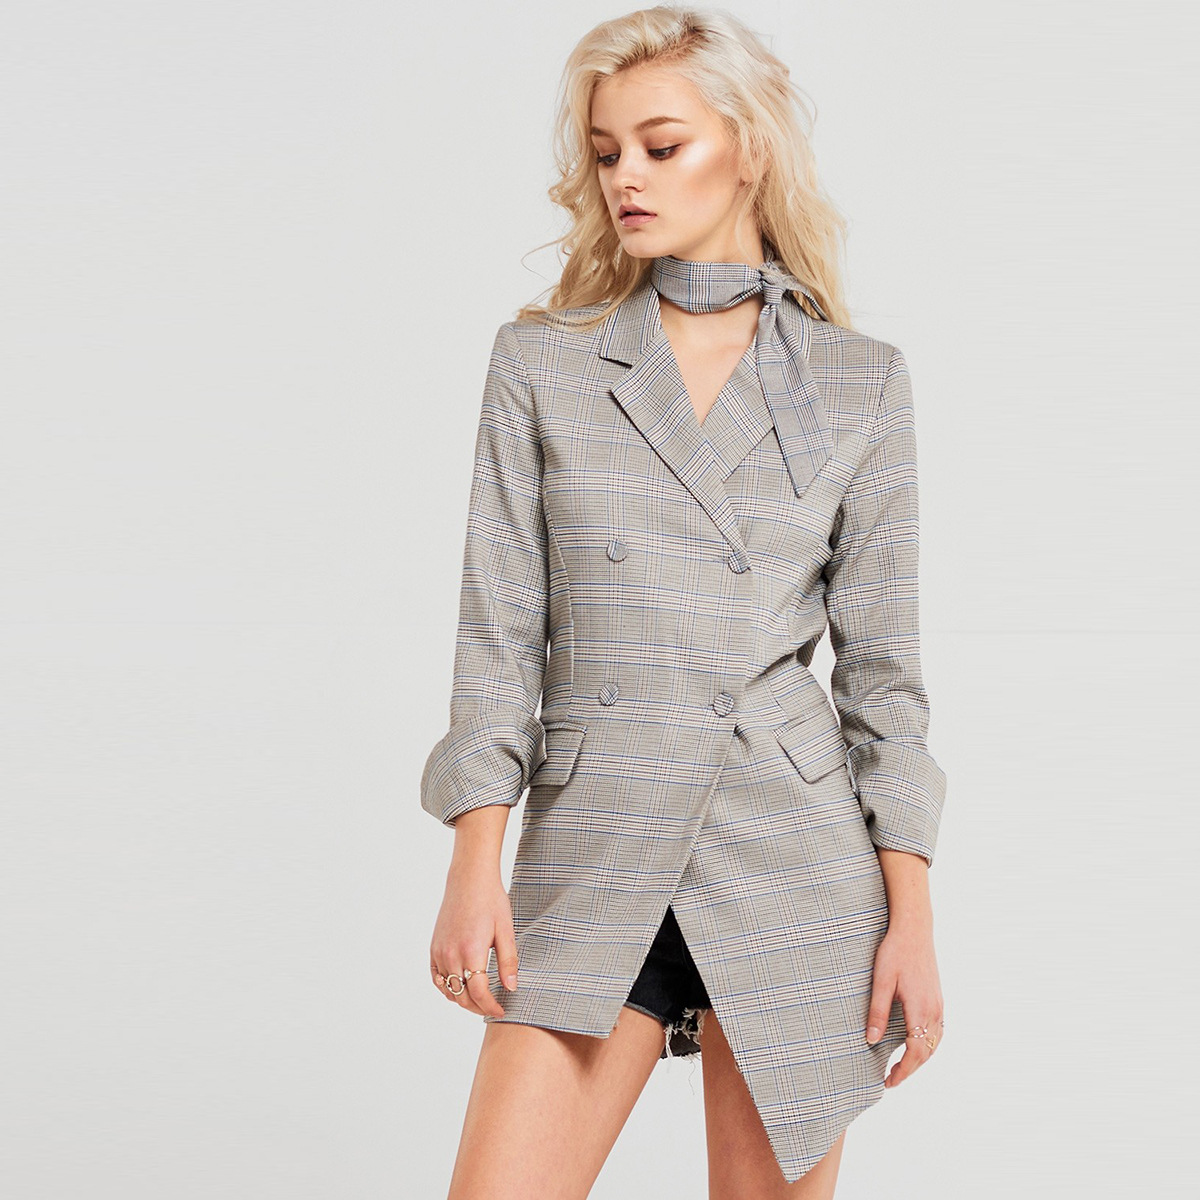 European American Fashion Simple Commuter Retro Striped Irregular Hem Medium And Long Casual Suit 2019 Women Coat And Jackets